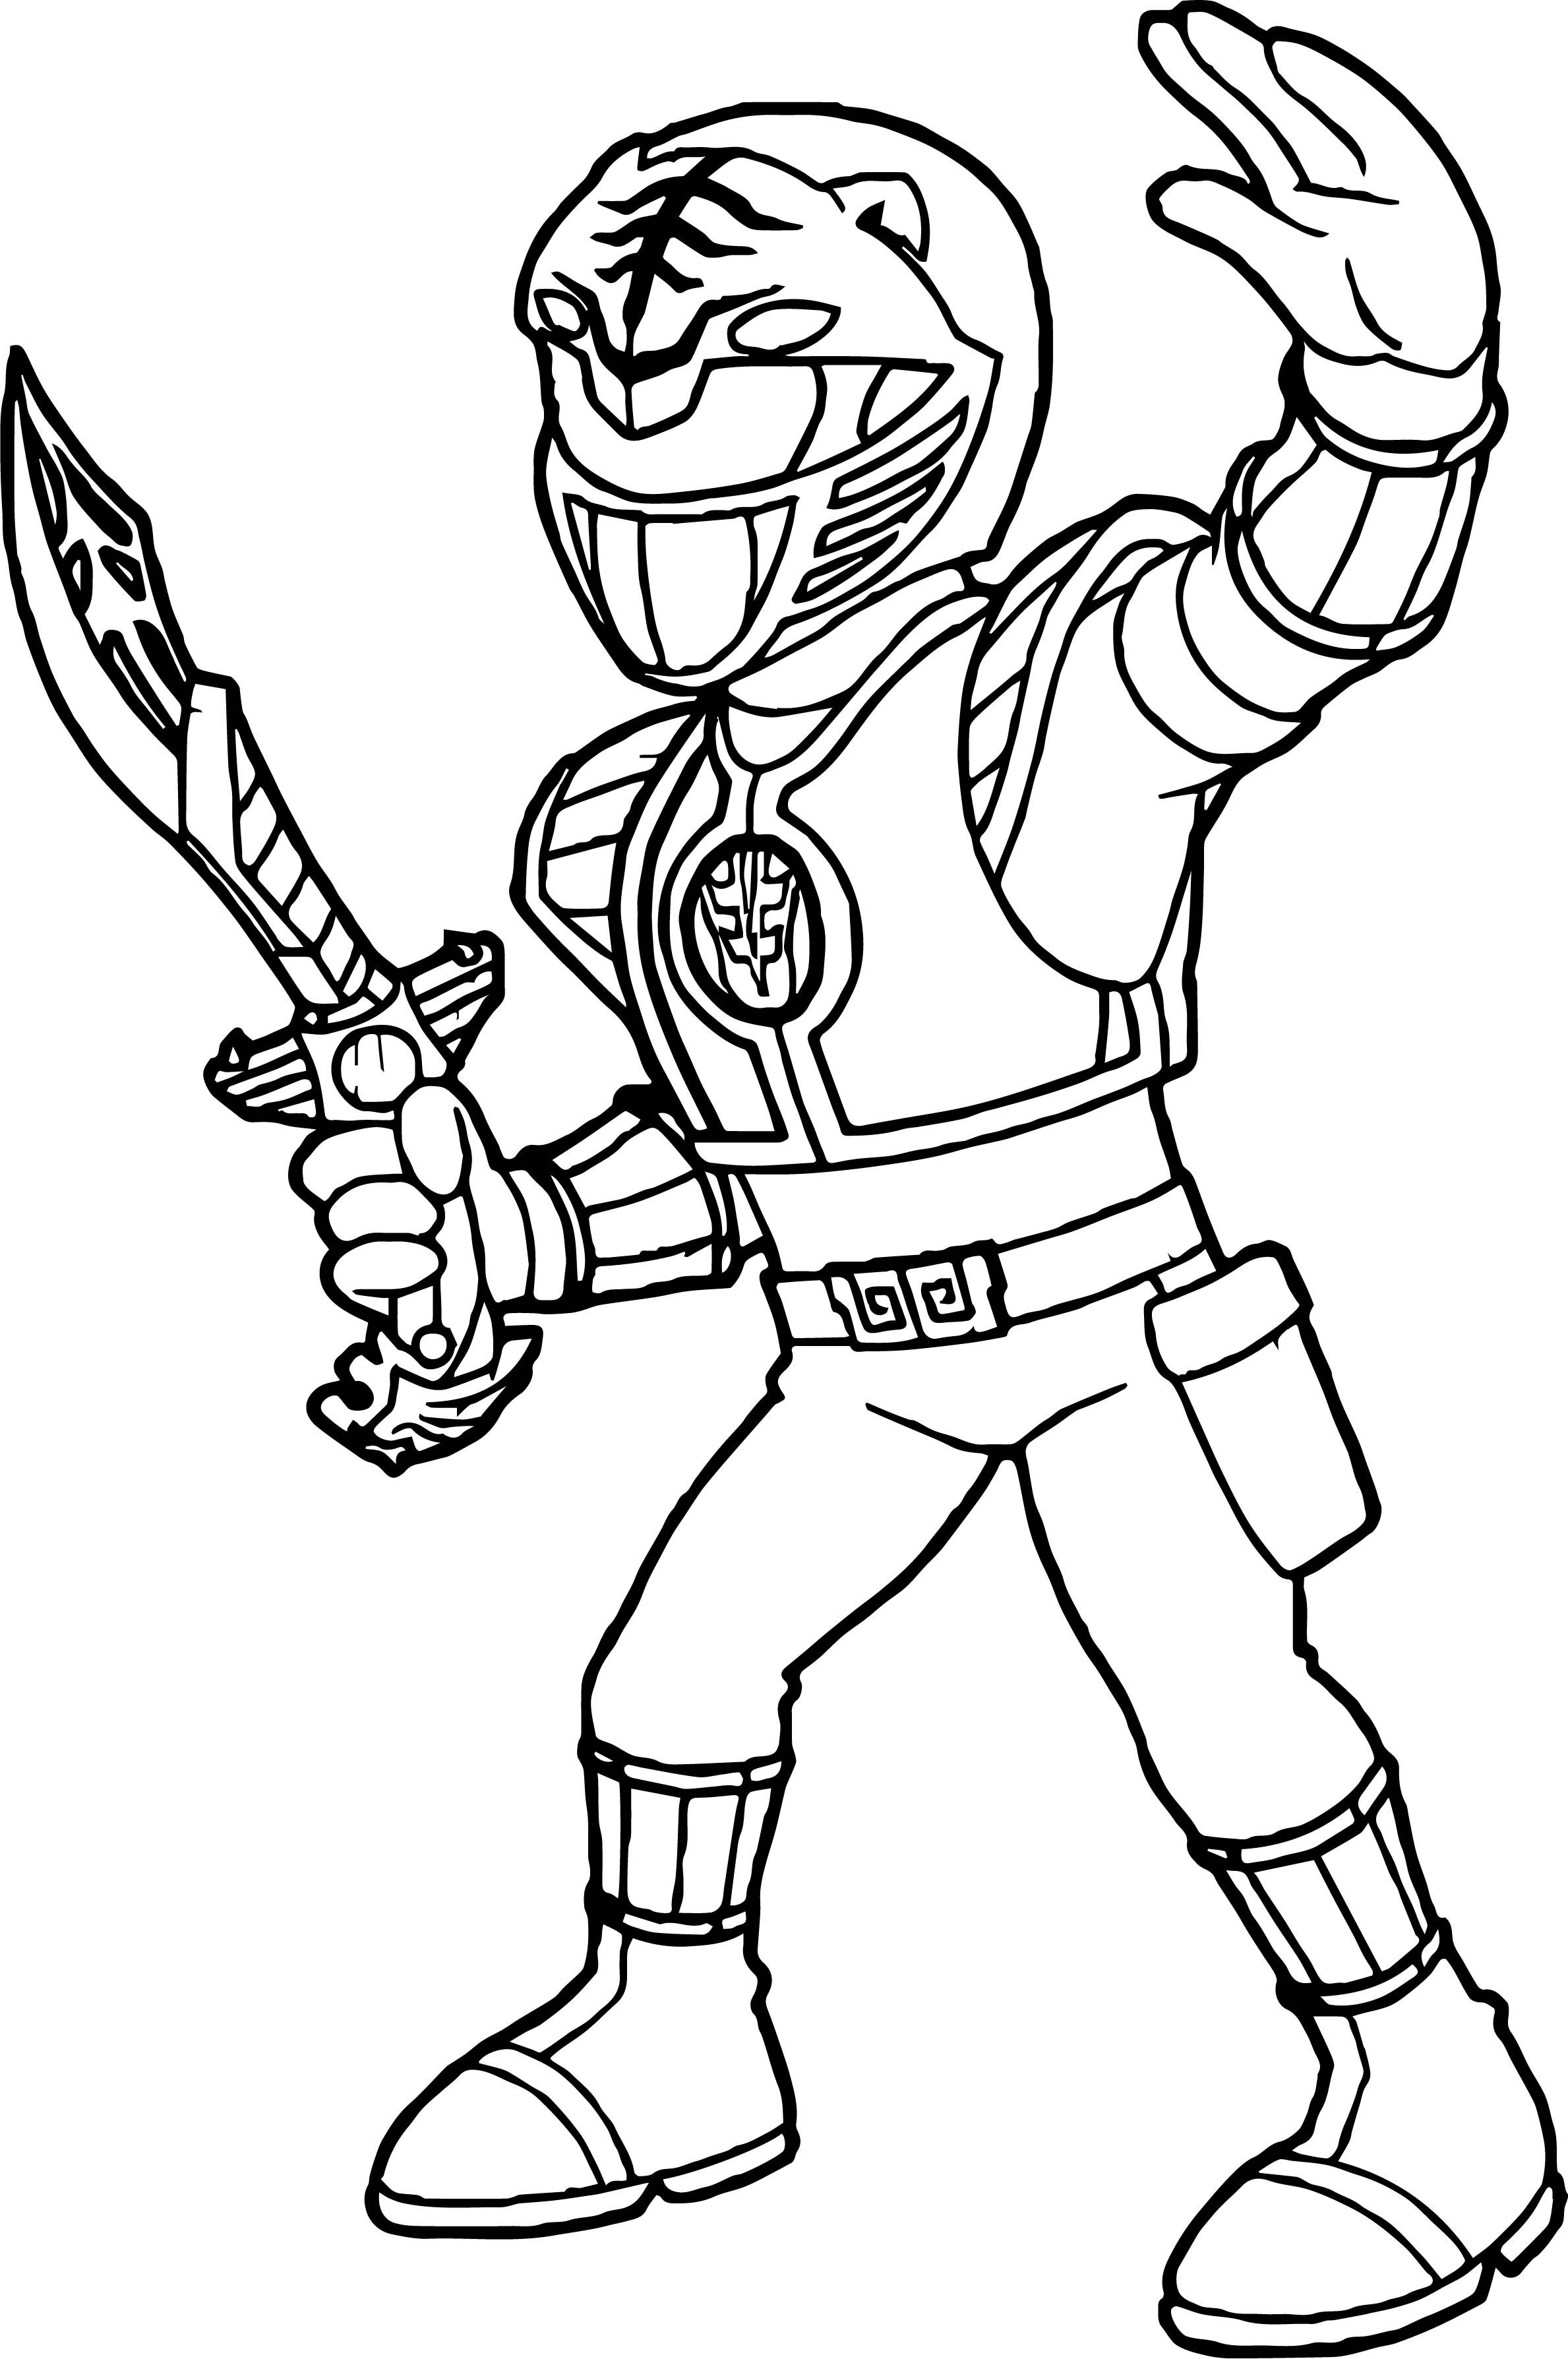 Cool Power Rangers White Ranger Coloring Page (With images